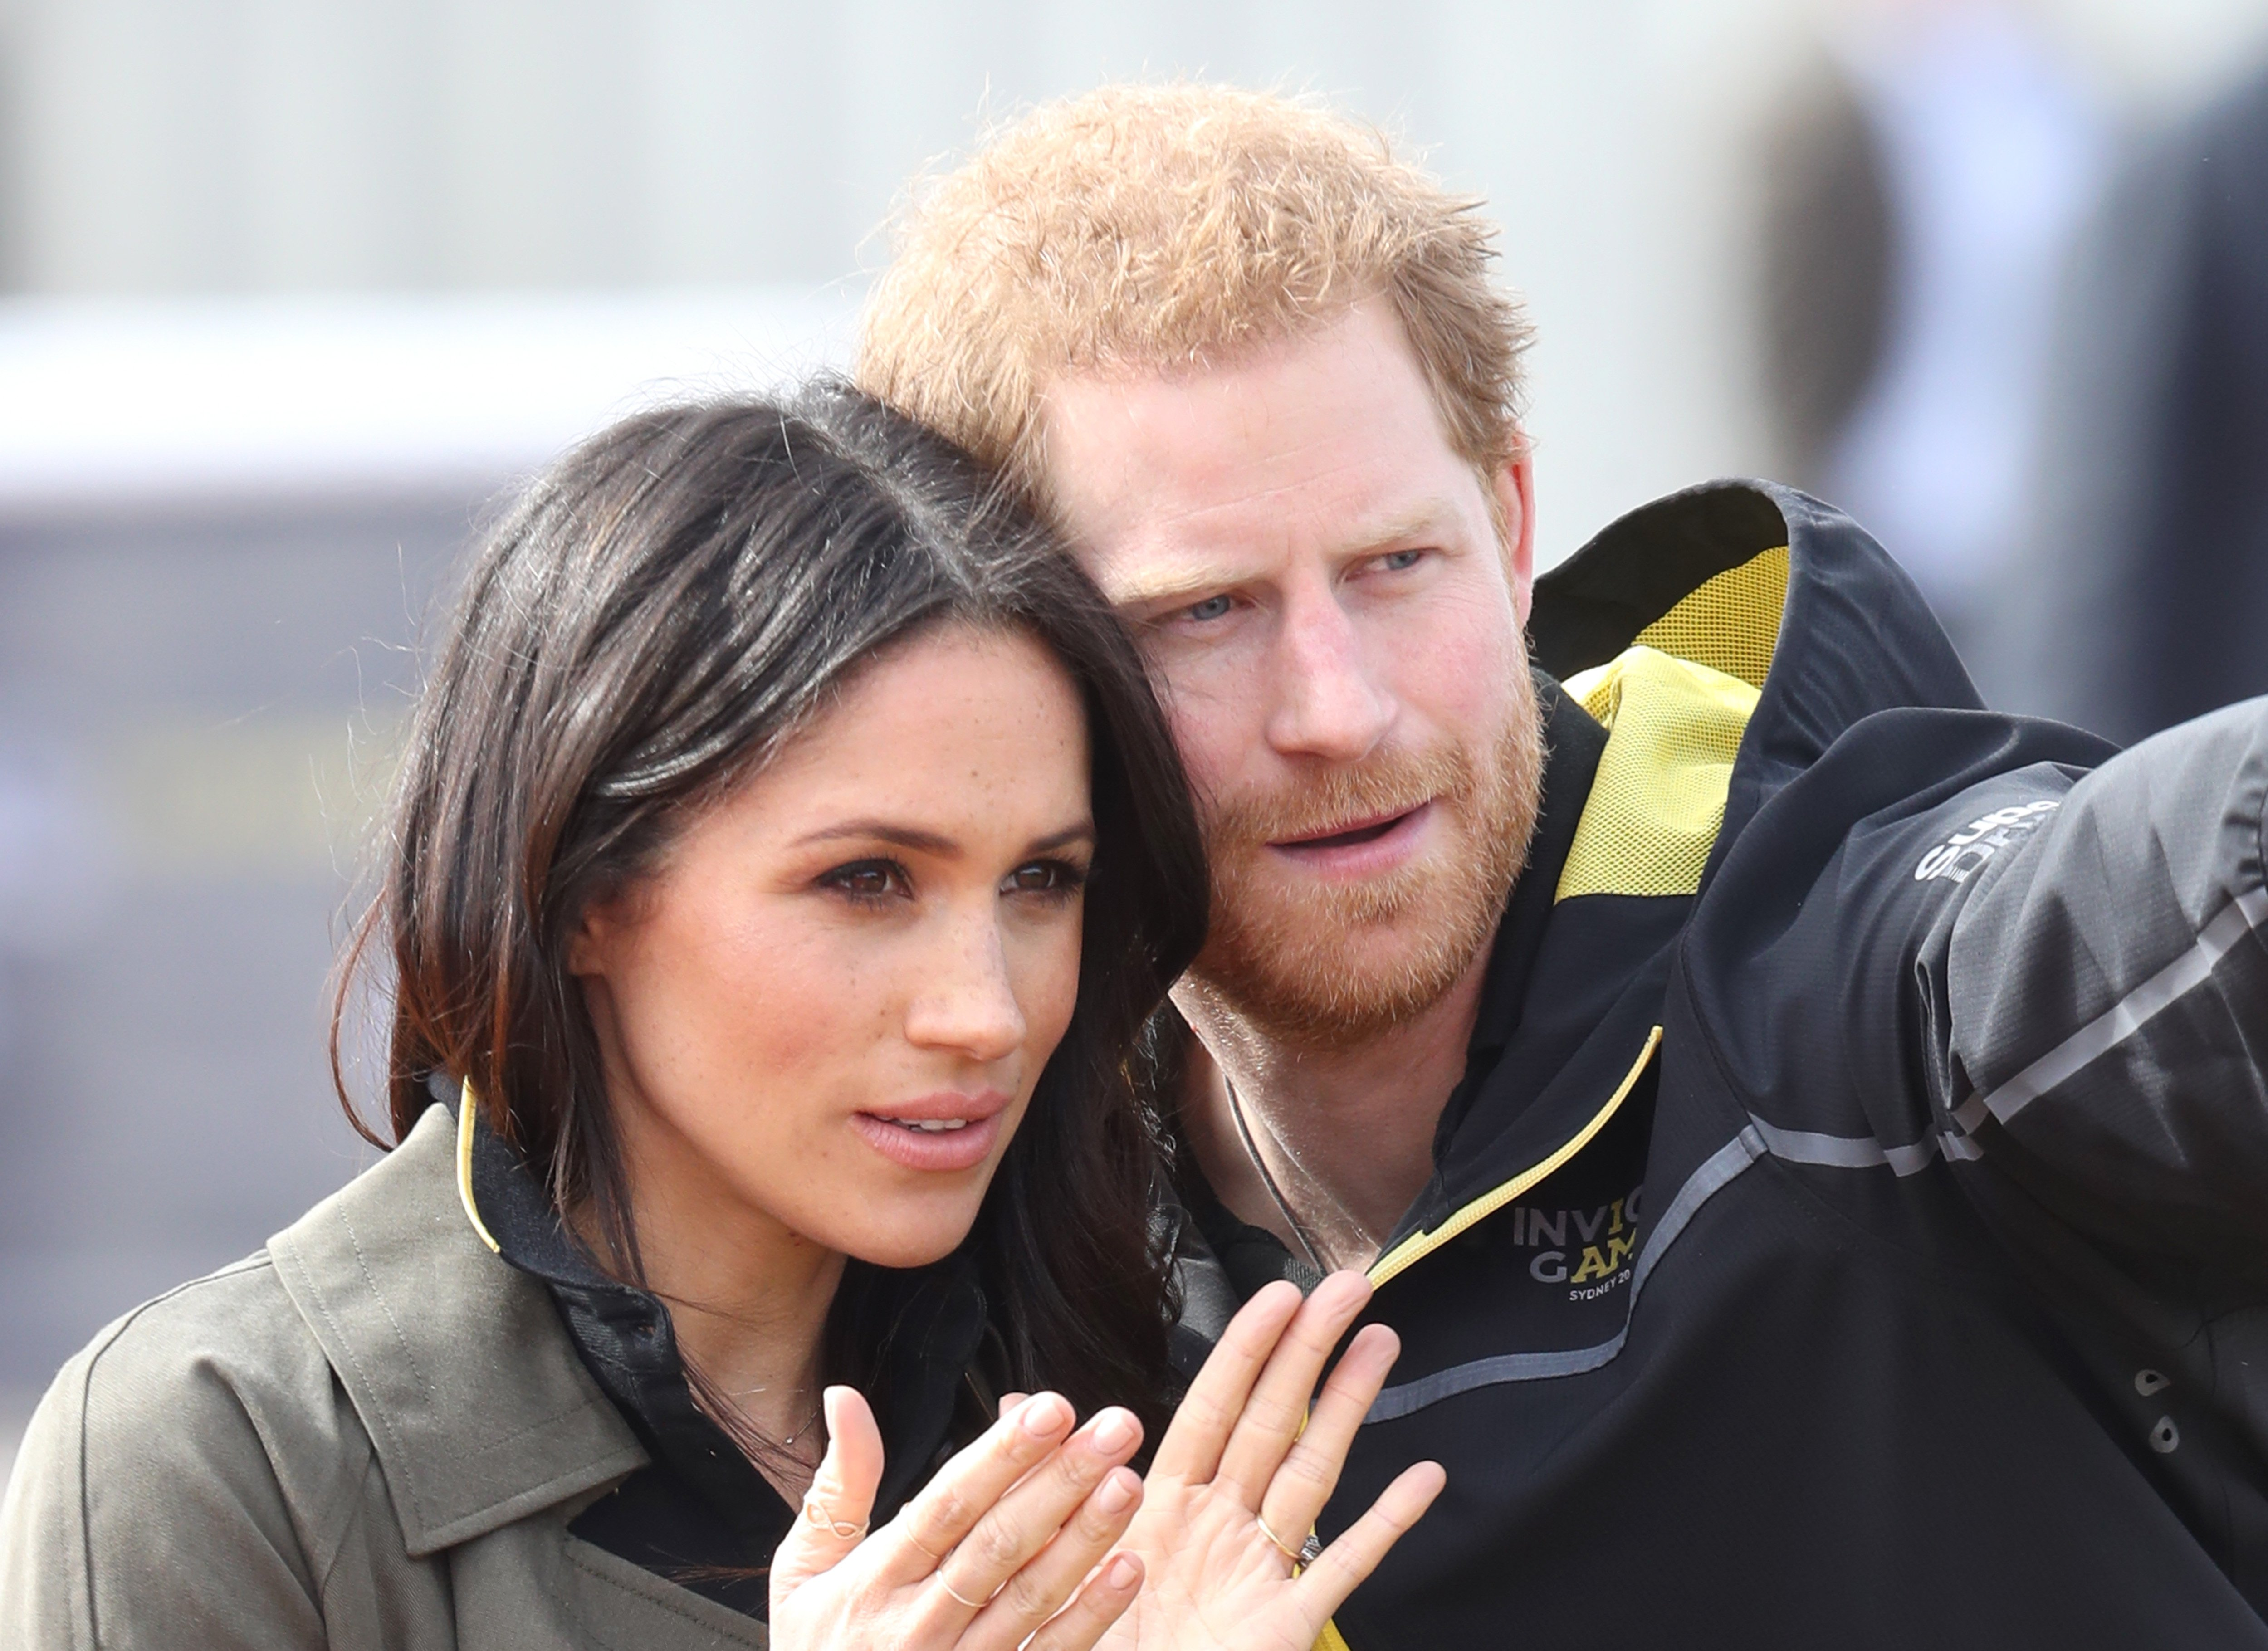 Prince Harry and Meghan Markle attending the UK team trials for The Invictus Games Sydney 2018  in Bath, England. | Photo: Getty Images